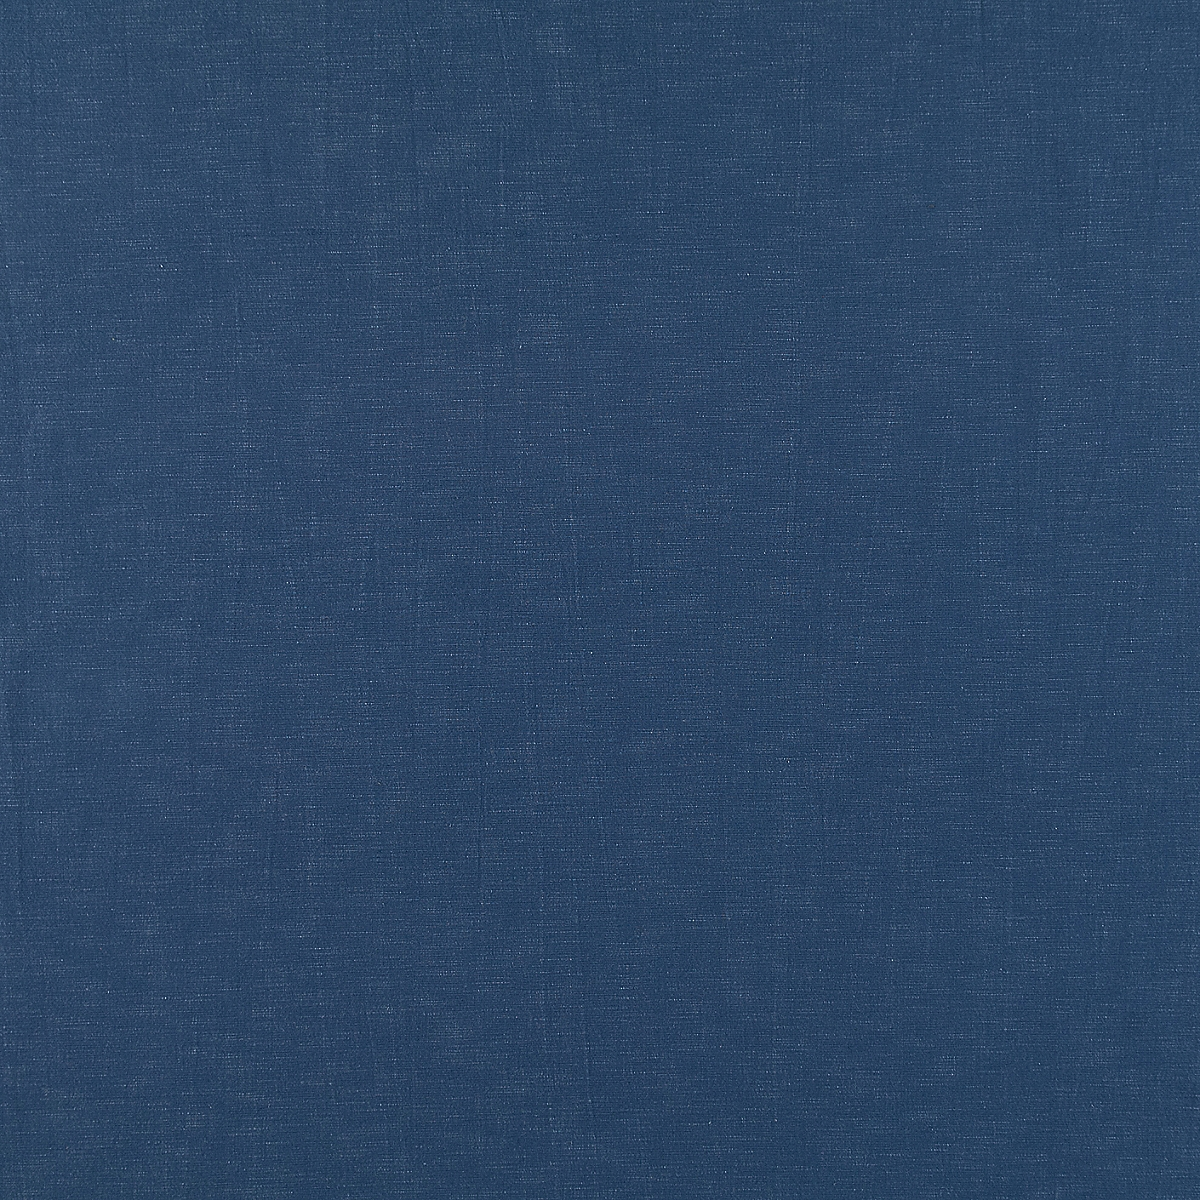 Coastal Cotton: Academy (fabric yardage)